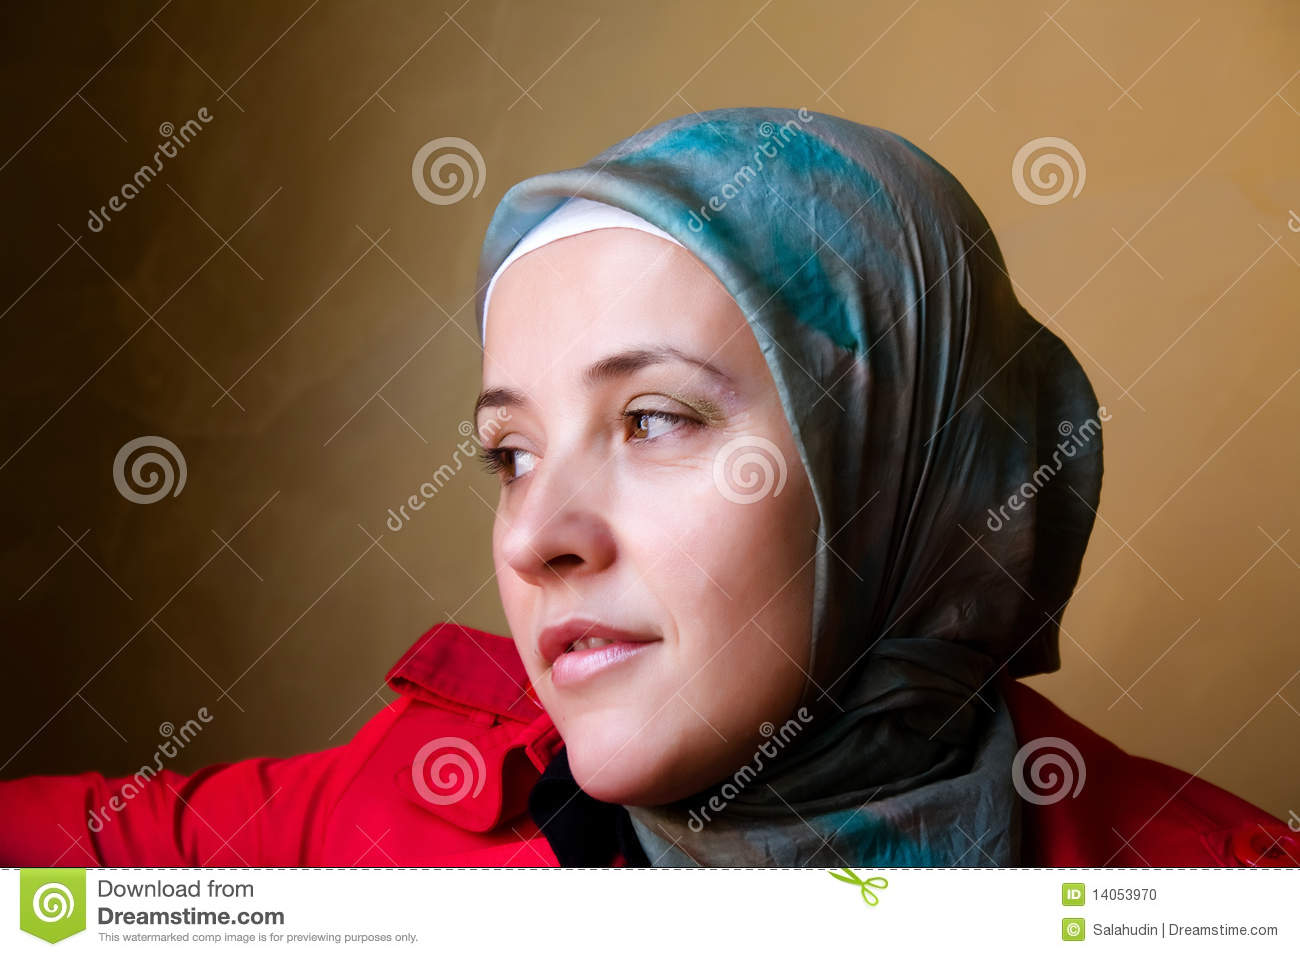 arch muslim girl personals Welcome to the fastest-growing of all the muslim matrimonials sites on the  internet salaamlovecom is an arab personals site dedicated to helping  muslims.